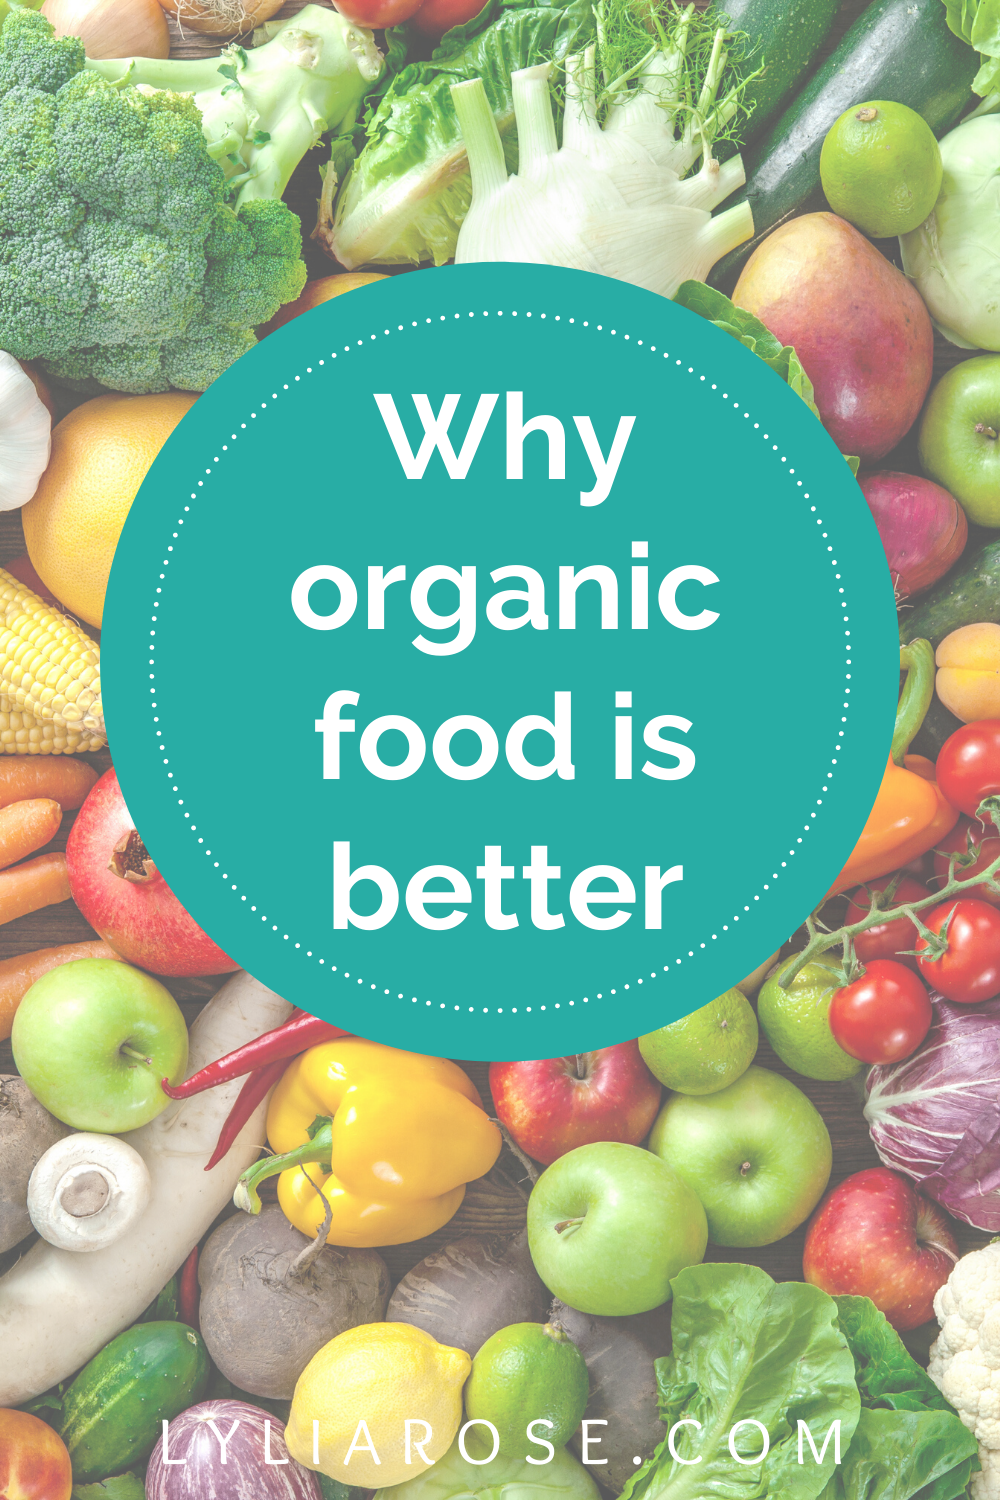 Why organic food is better